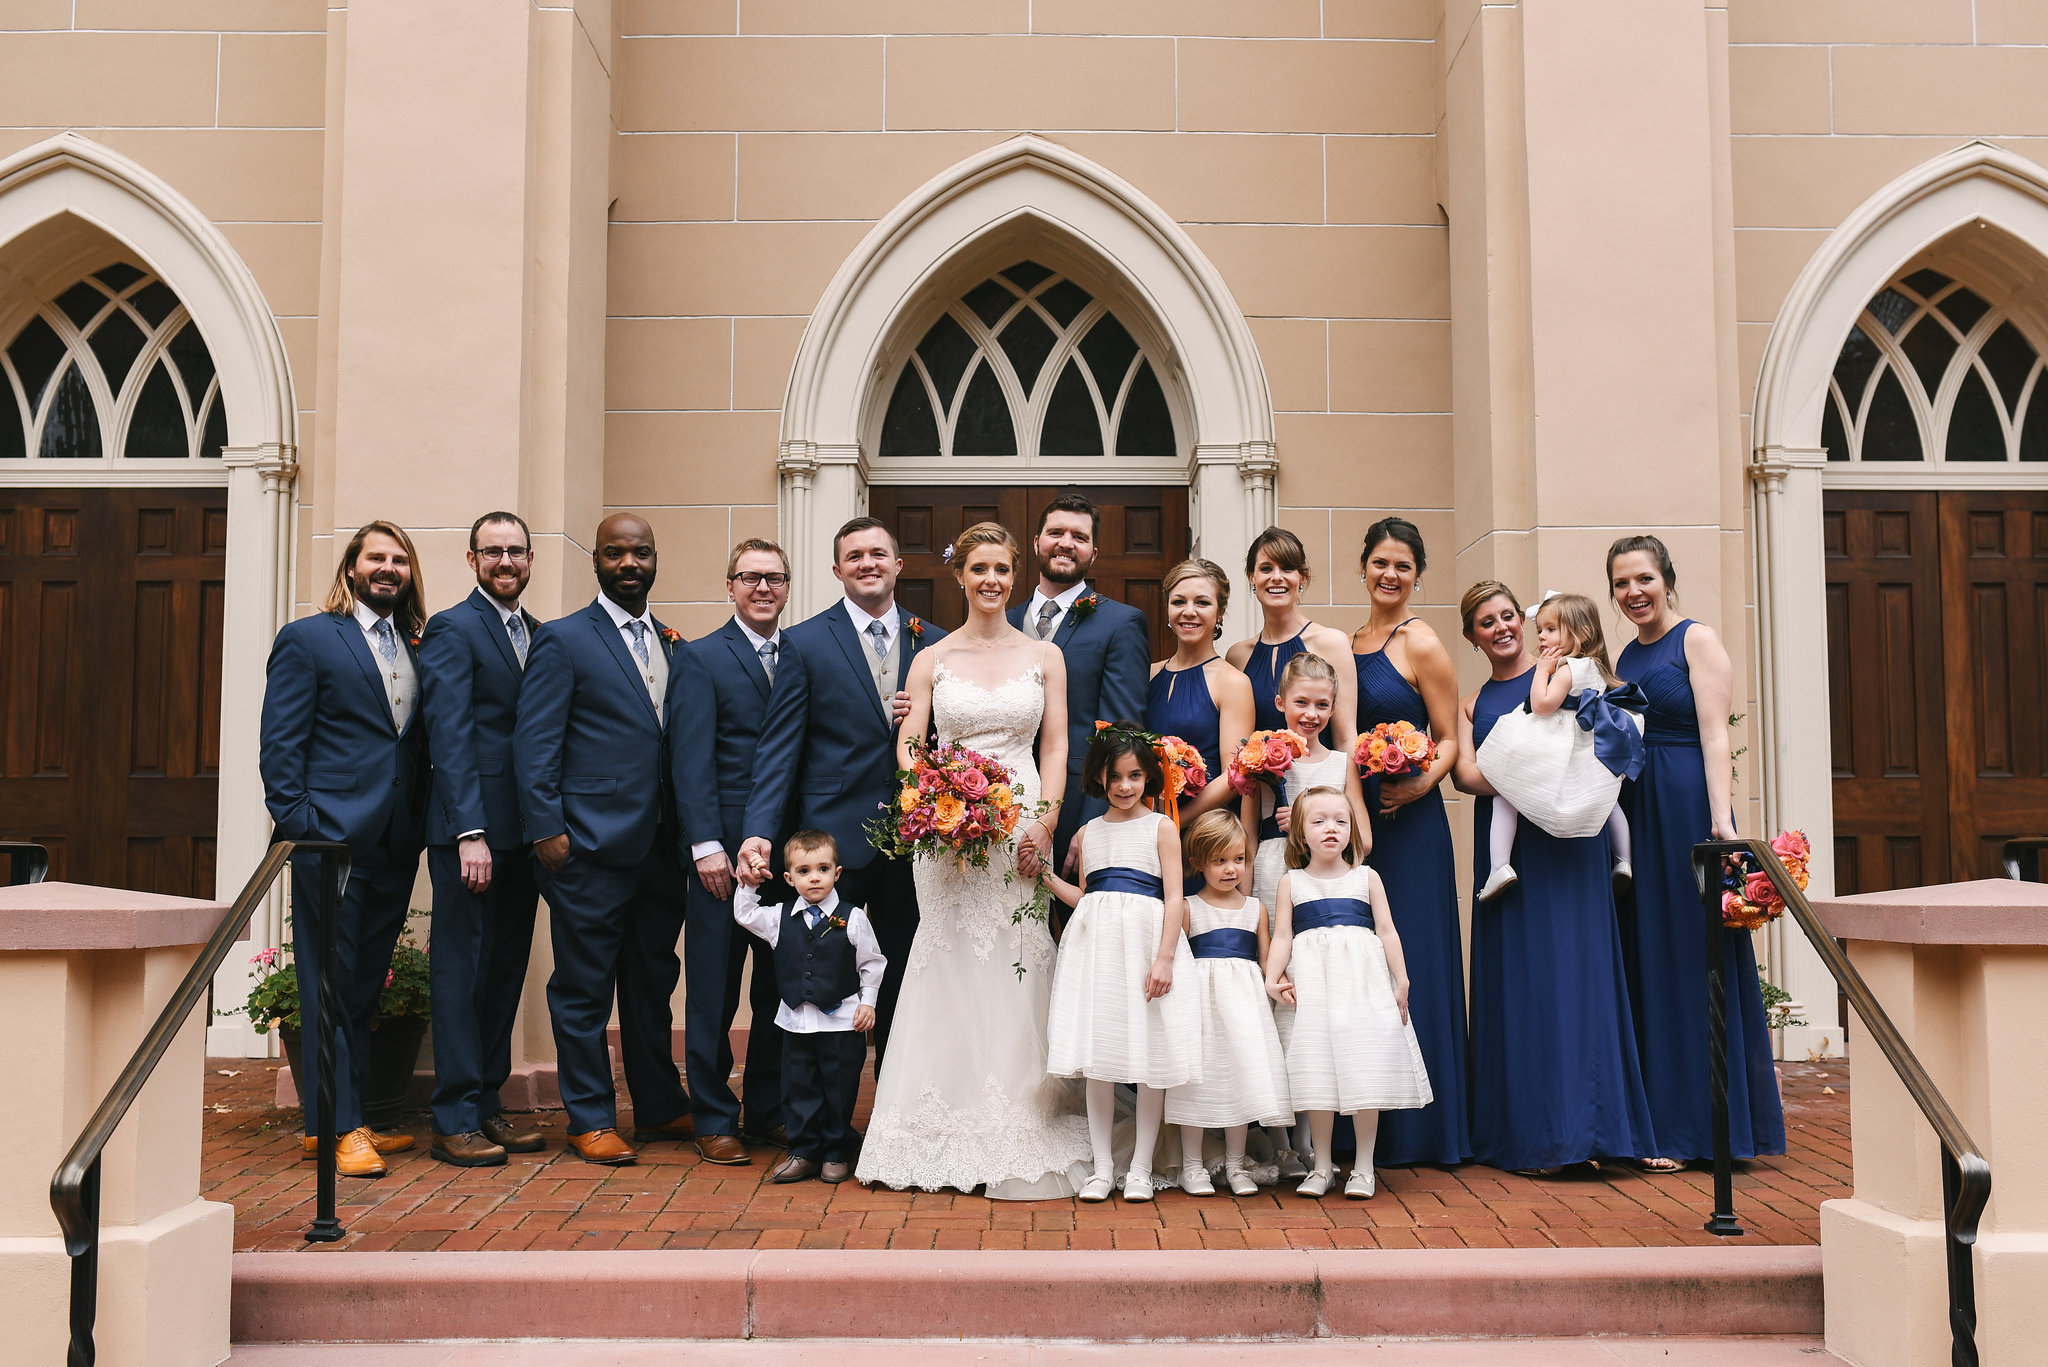 Alexandria, Fall Wedding, Historic, Old Town, DC, Jos A. Bank Suit, The Enchanted Florist, Wedding Party, Bridal Party, Lian Carlo Wedding Dress, Flower Girls